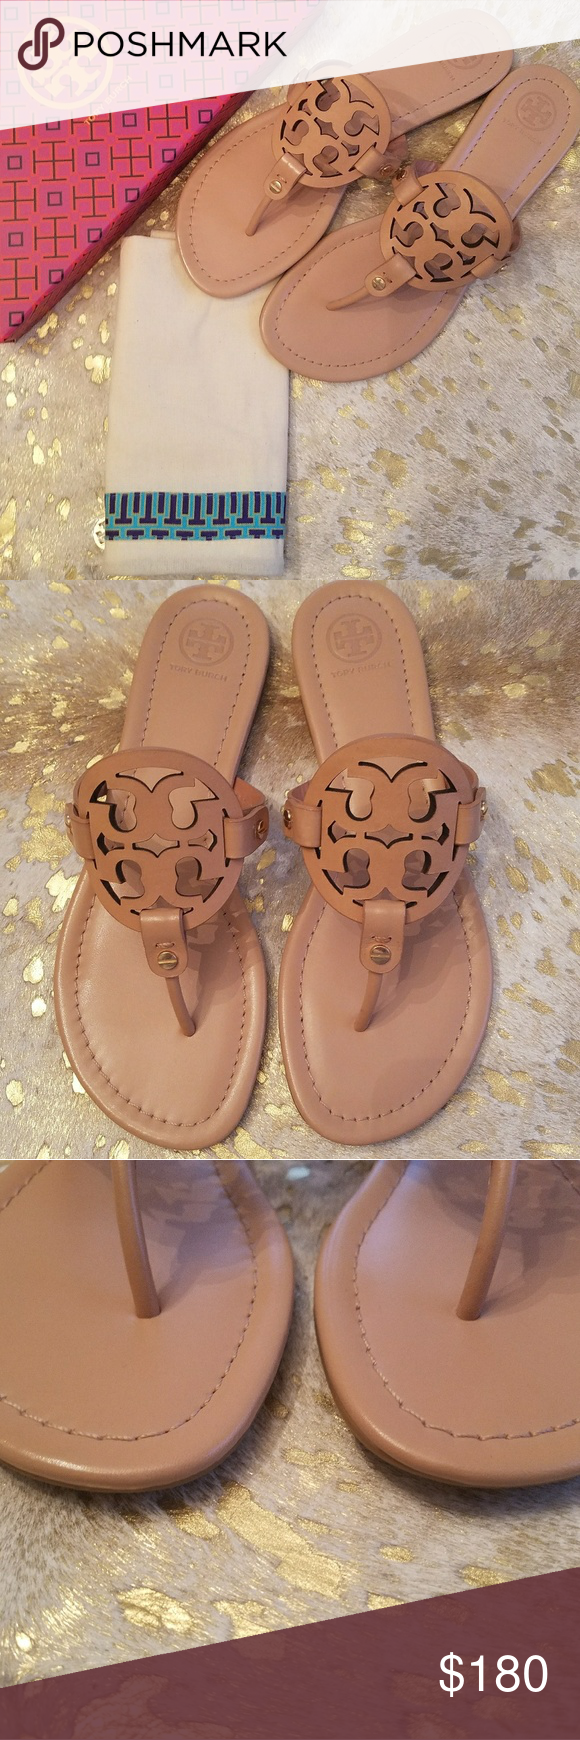 7e0f9269a6183 New Tory Burch Miller Sandal Size 9.5 Light Makeup Brand New! Comes with  Box and Dust Cover Size 9.5 Light Makeup Tory Burch Shoes Sandals